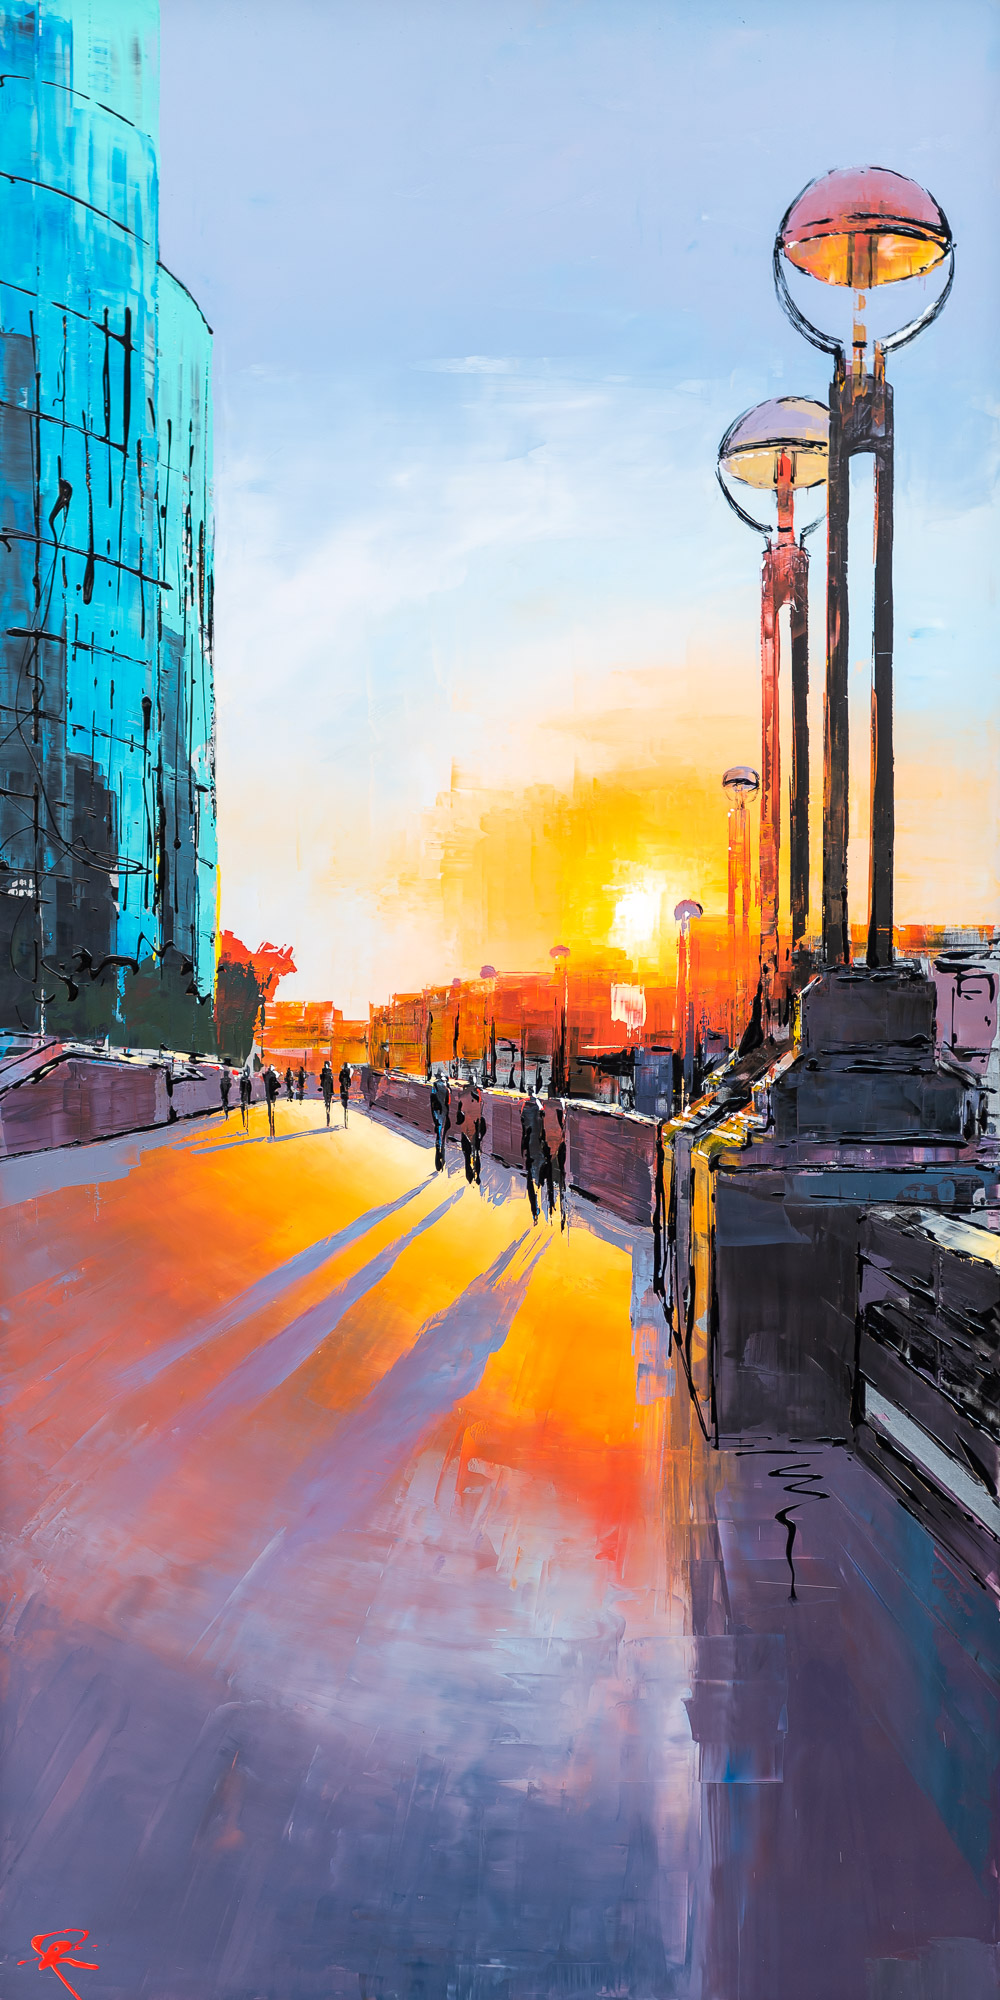 London Burns Tonight by Paul Kenton, UK contemporary cityscape artist, an original painting from the London Collection